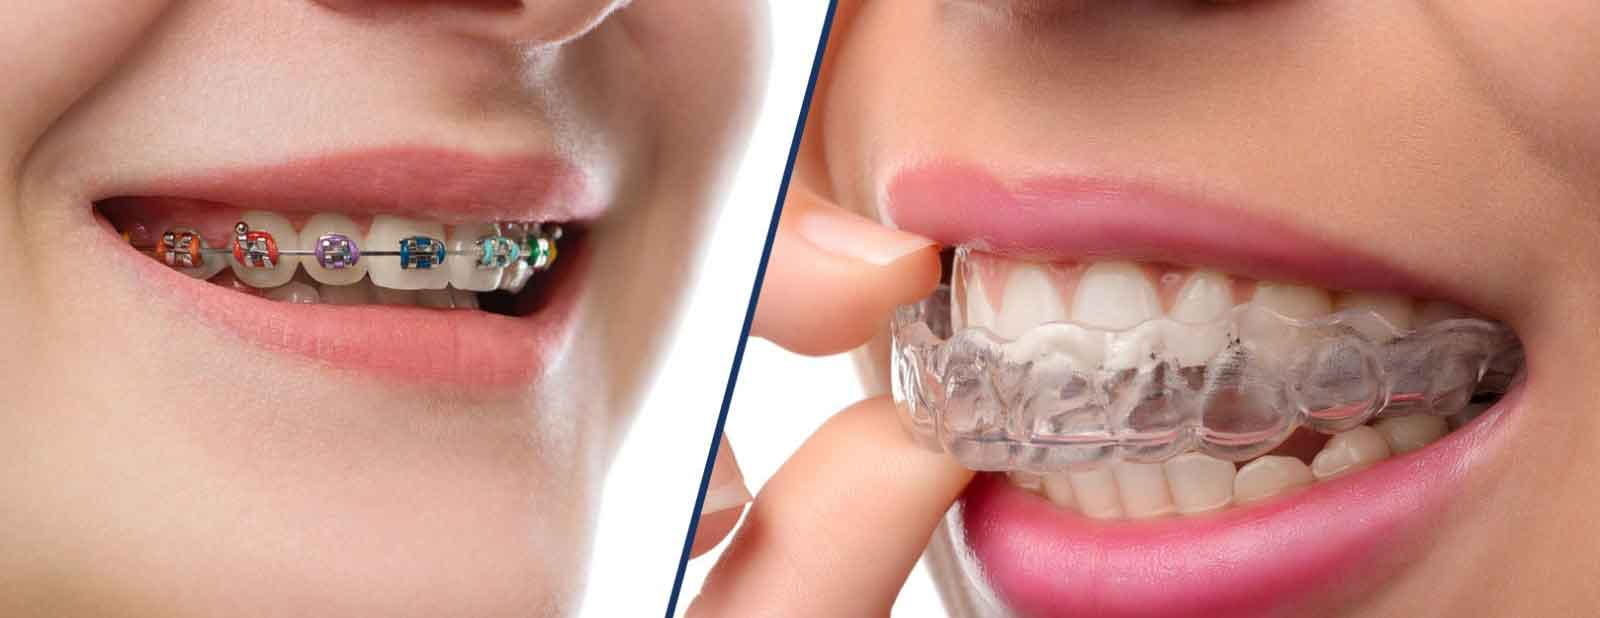 Invisalign dental braces Bromsgrove Dental Clinic